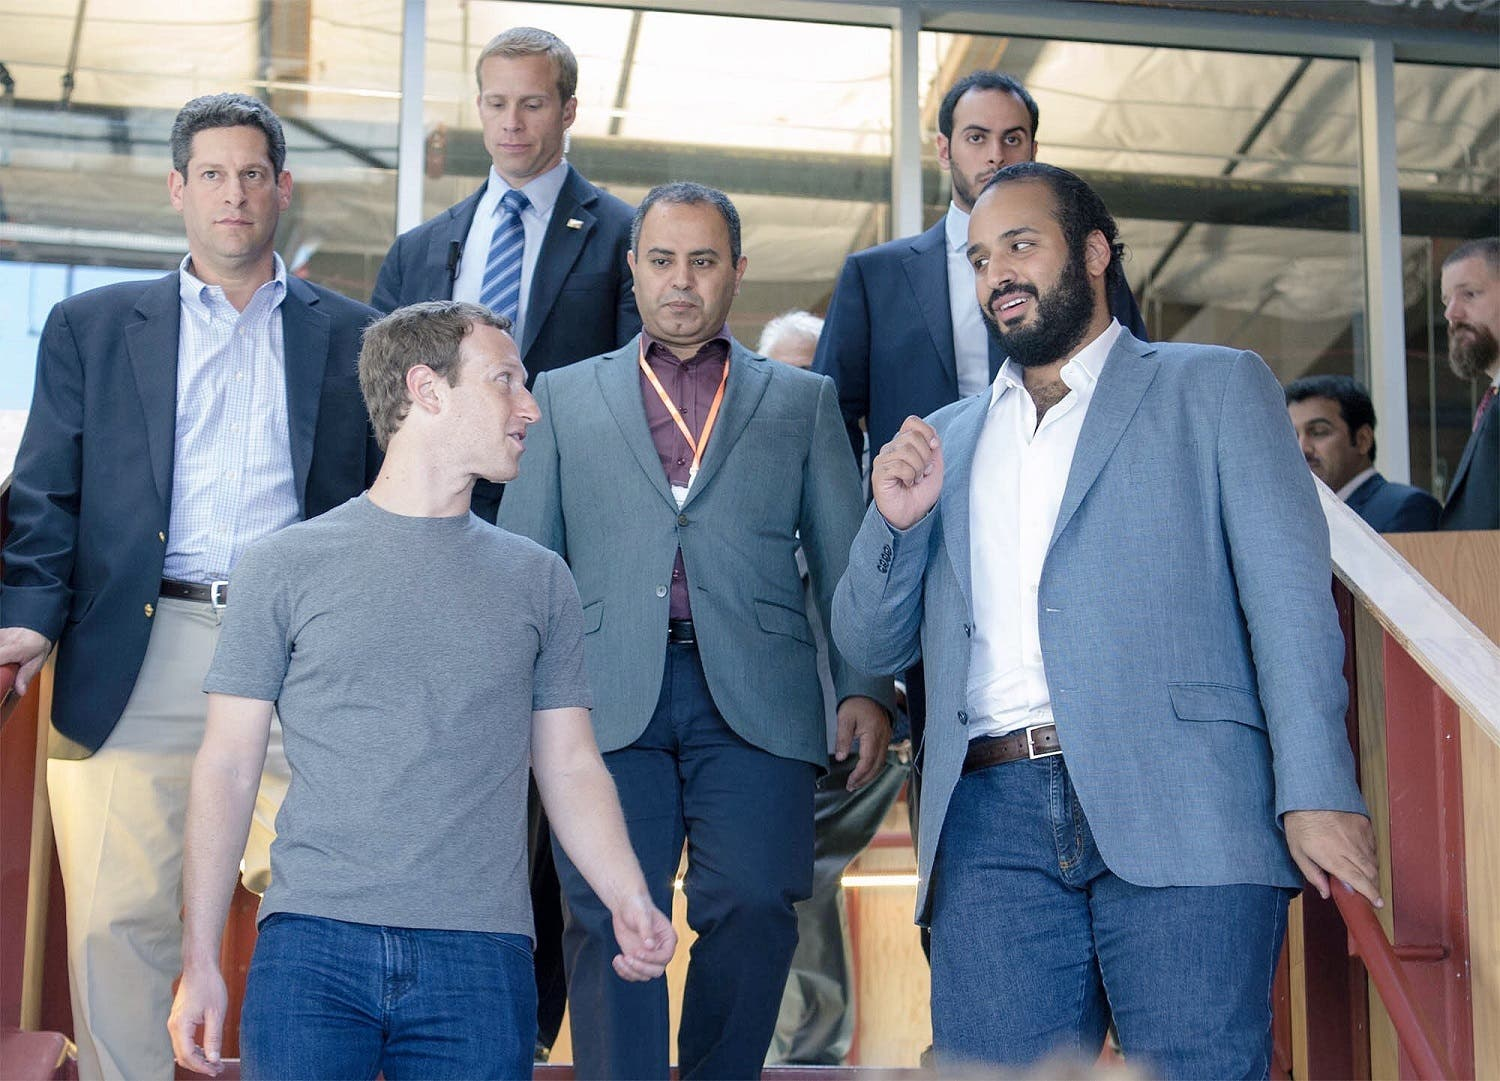 Saudi Deputy Crown Prince Mohammed bin Salman talks with Facebook founder Mark Zuckerberg (Exclusive images by Bandar al-Galoud)